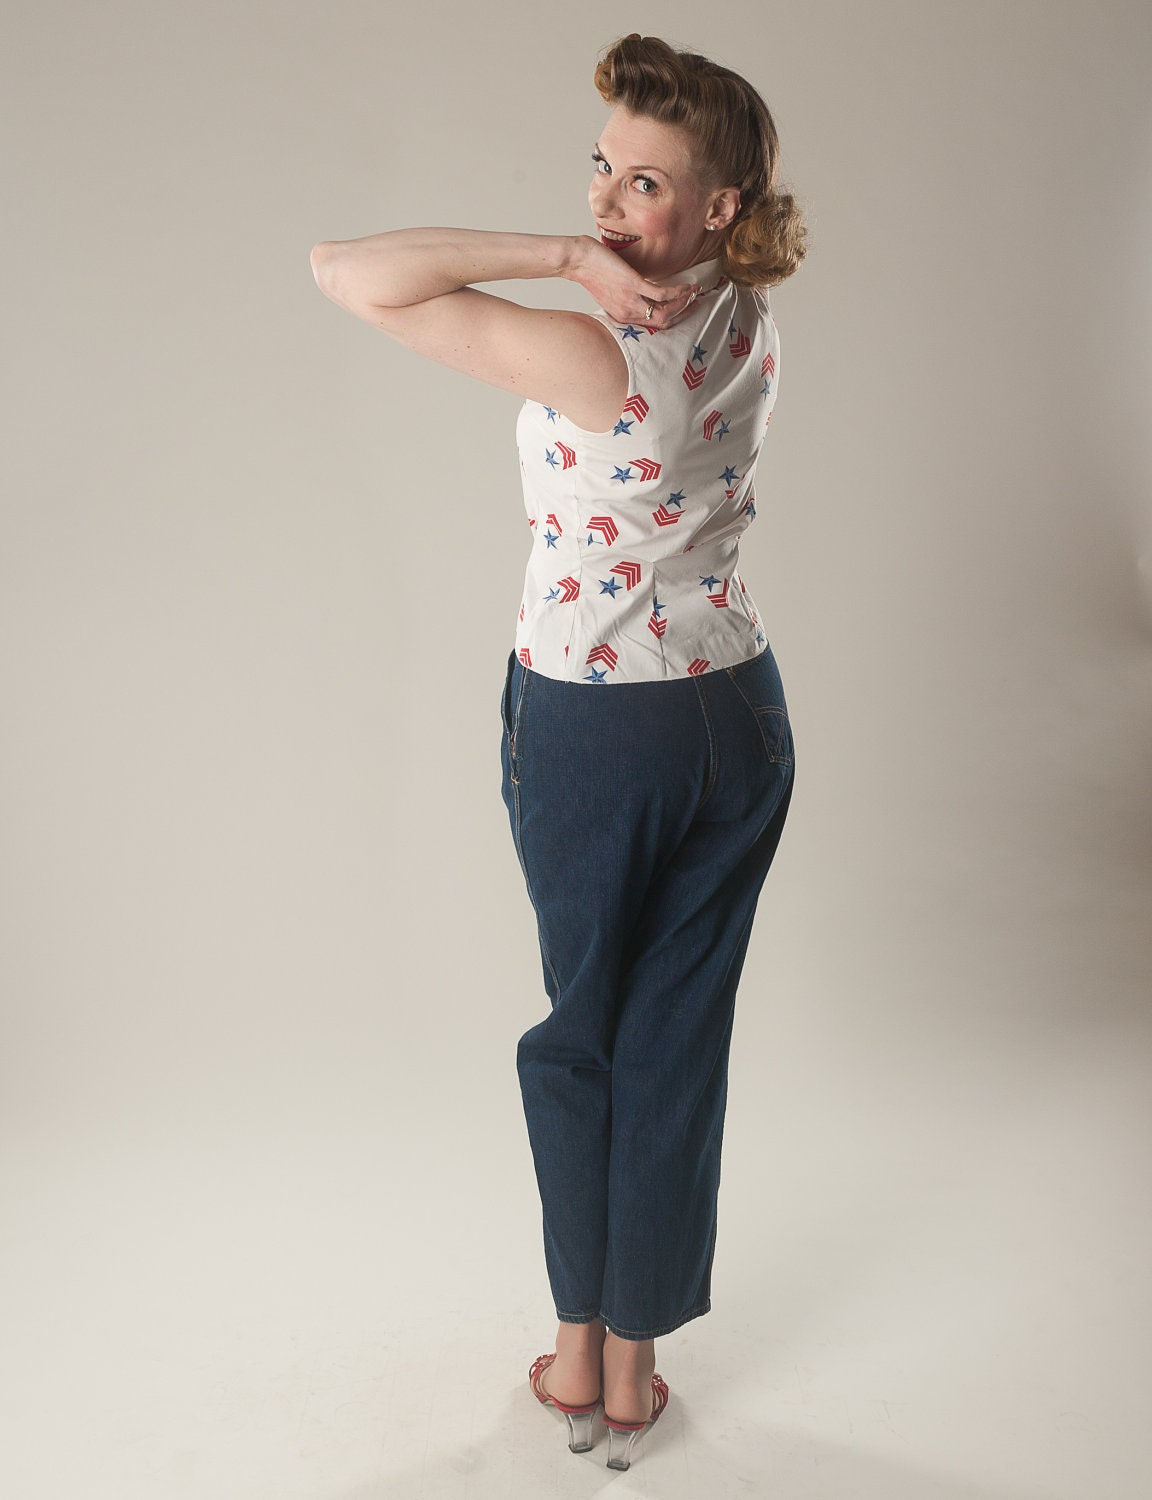 Vintage 1950s Denim Jeans Pants White Stag Pedal by